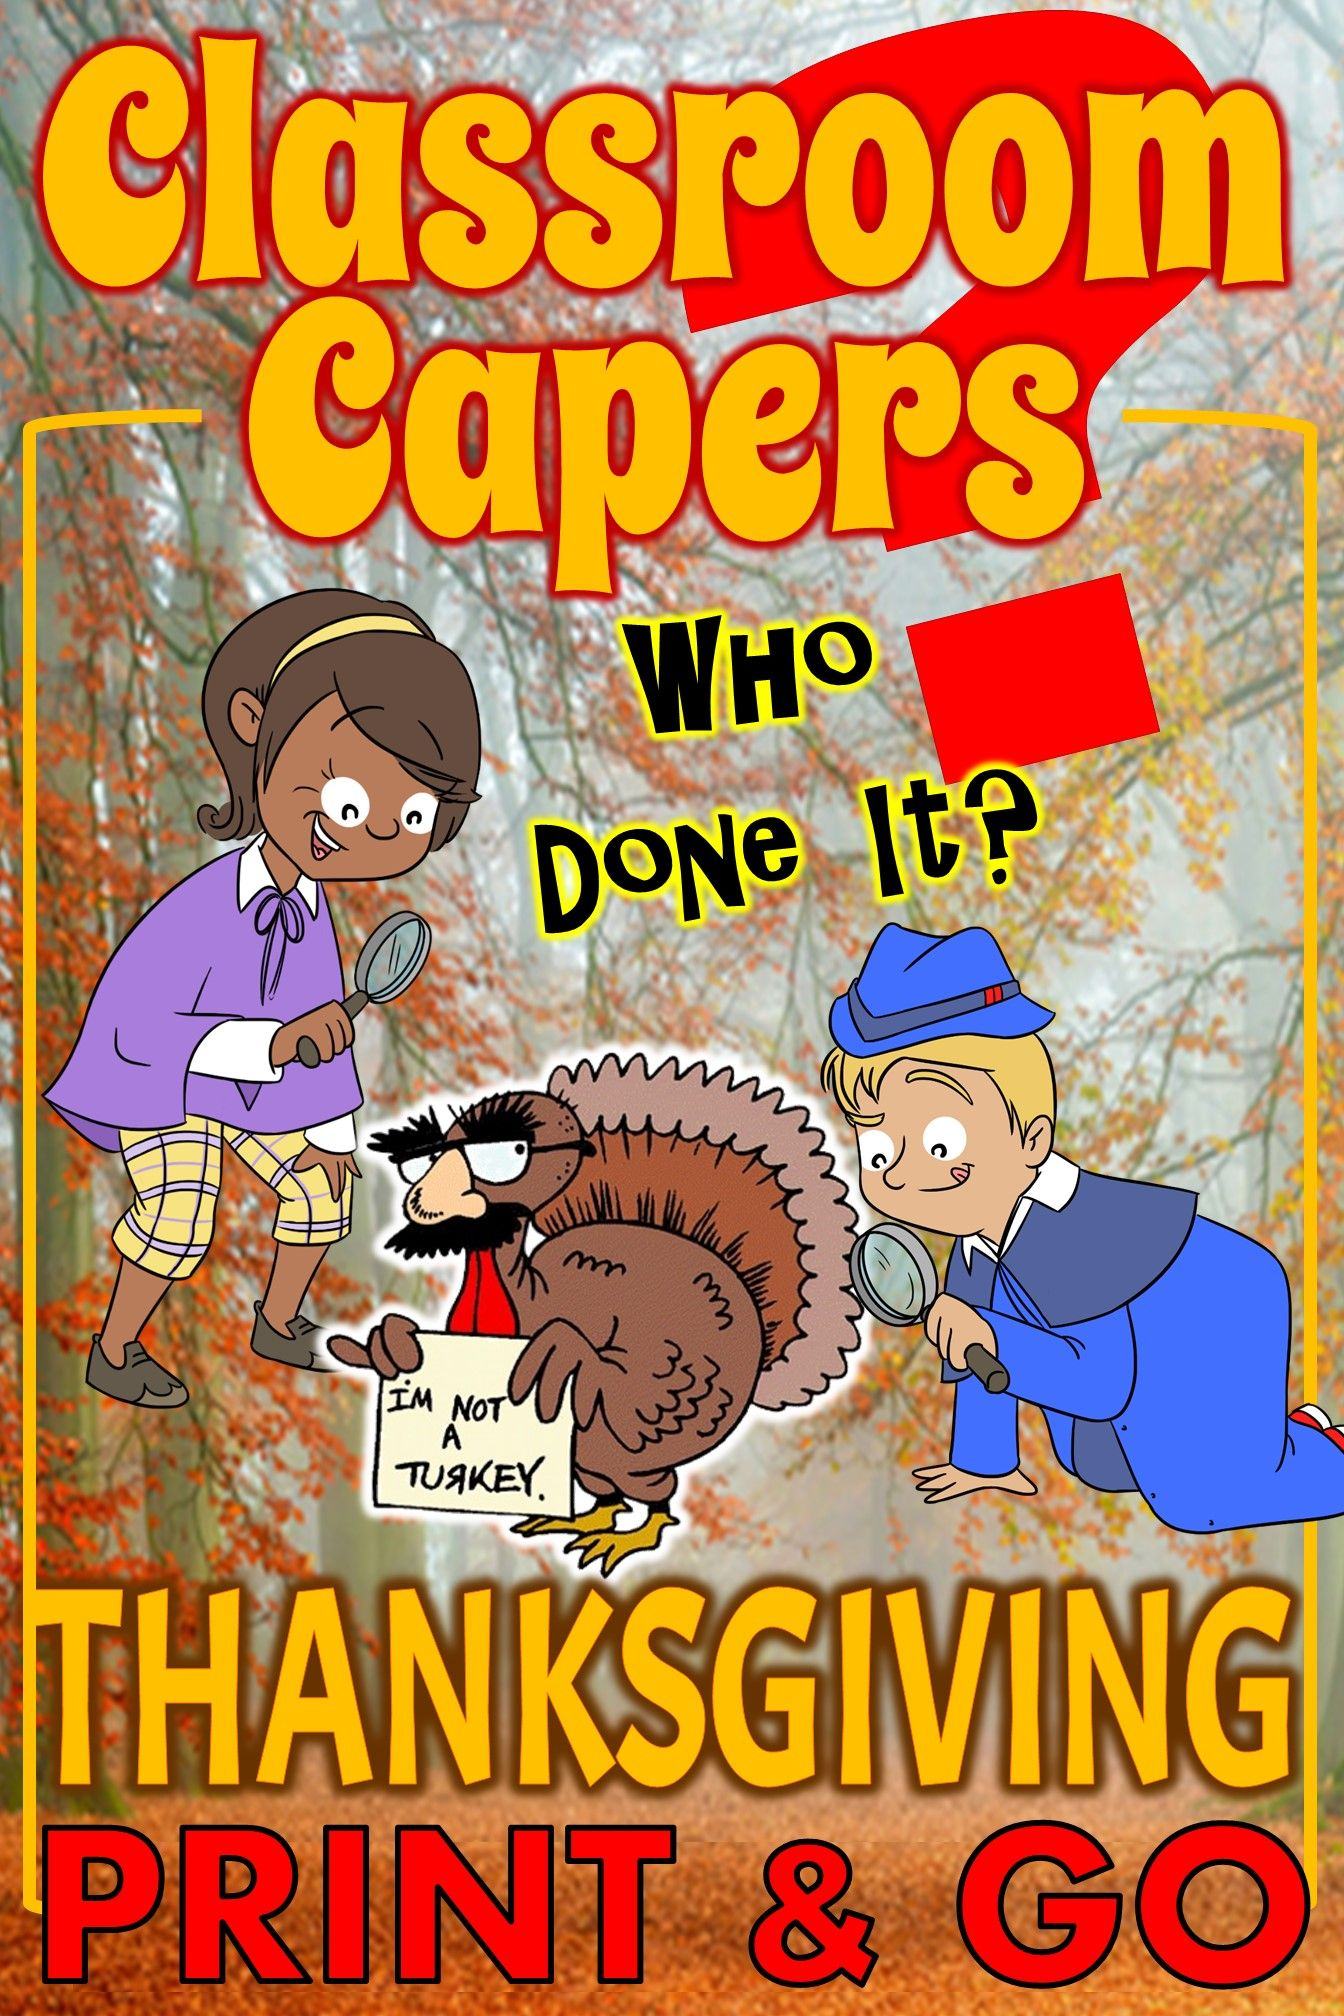 Thanksgiving Activity Classroom Capers Whole Class Game